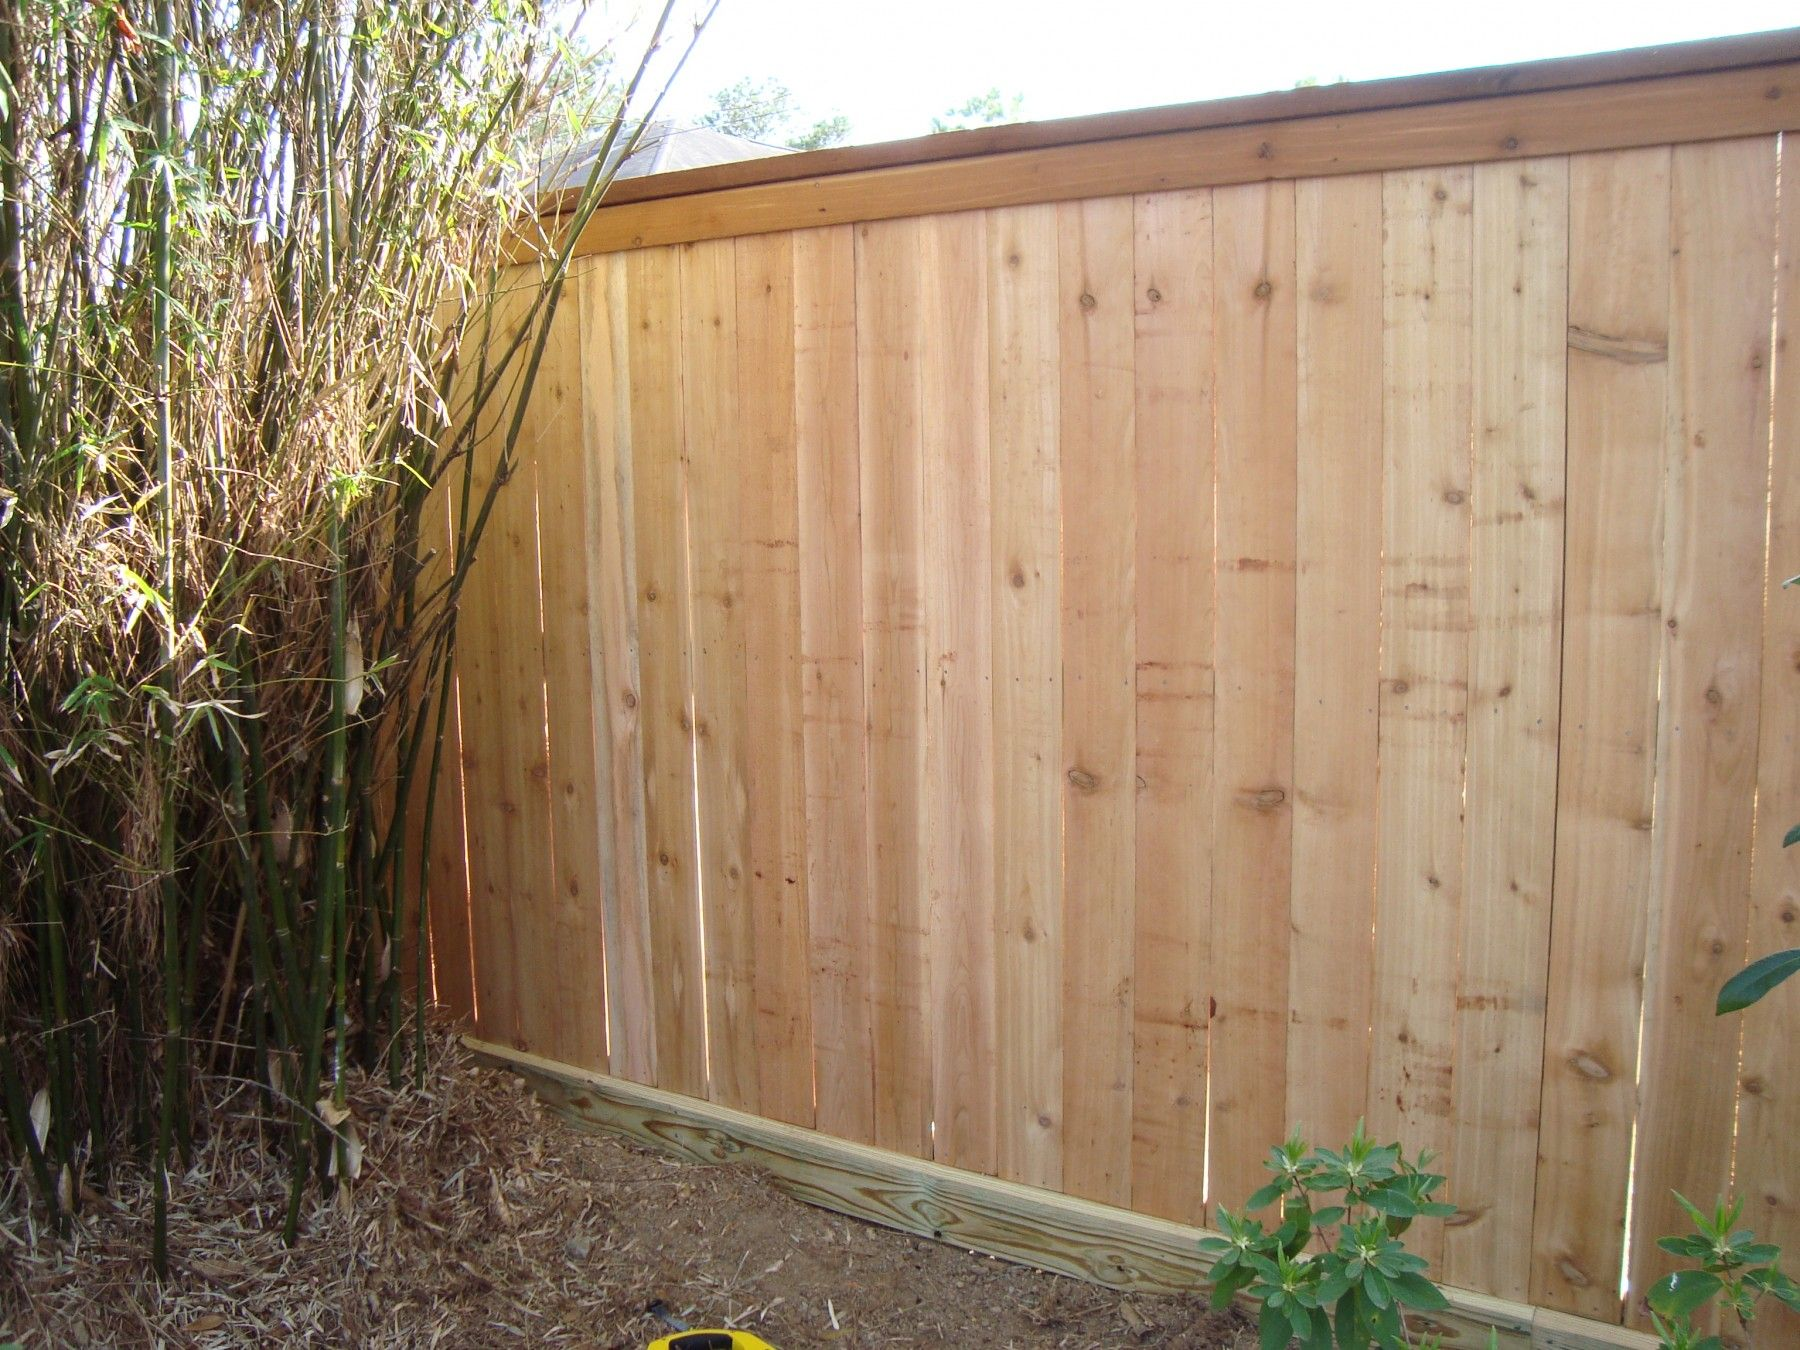 6 Ft Cap Top Fence With 2x6 Rot Board 2x6 Cedar Cap With 1x4 Cedar Trim Cedar Wood Fence Cedar Fence Wood Fence